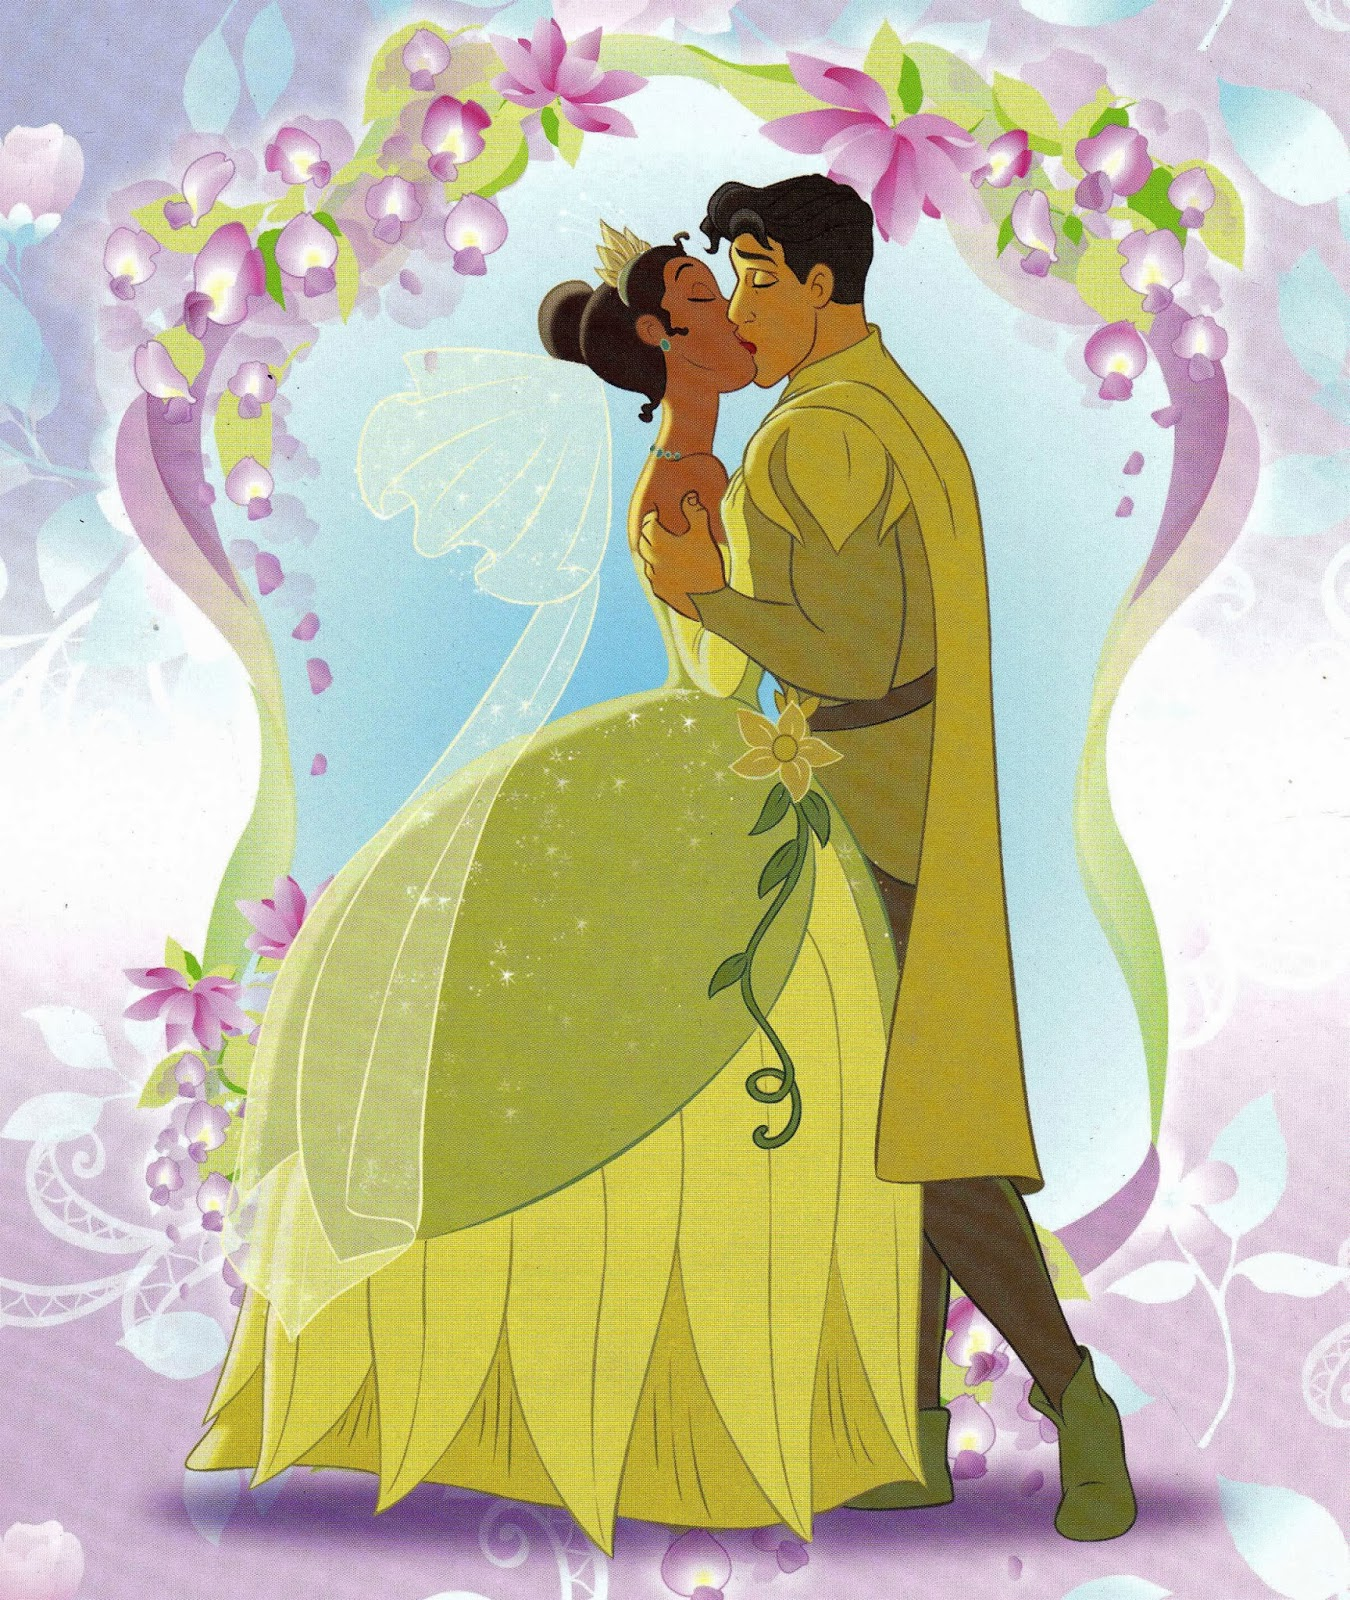 Tiana and naveen after wedding the princess and the frog ...